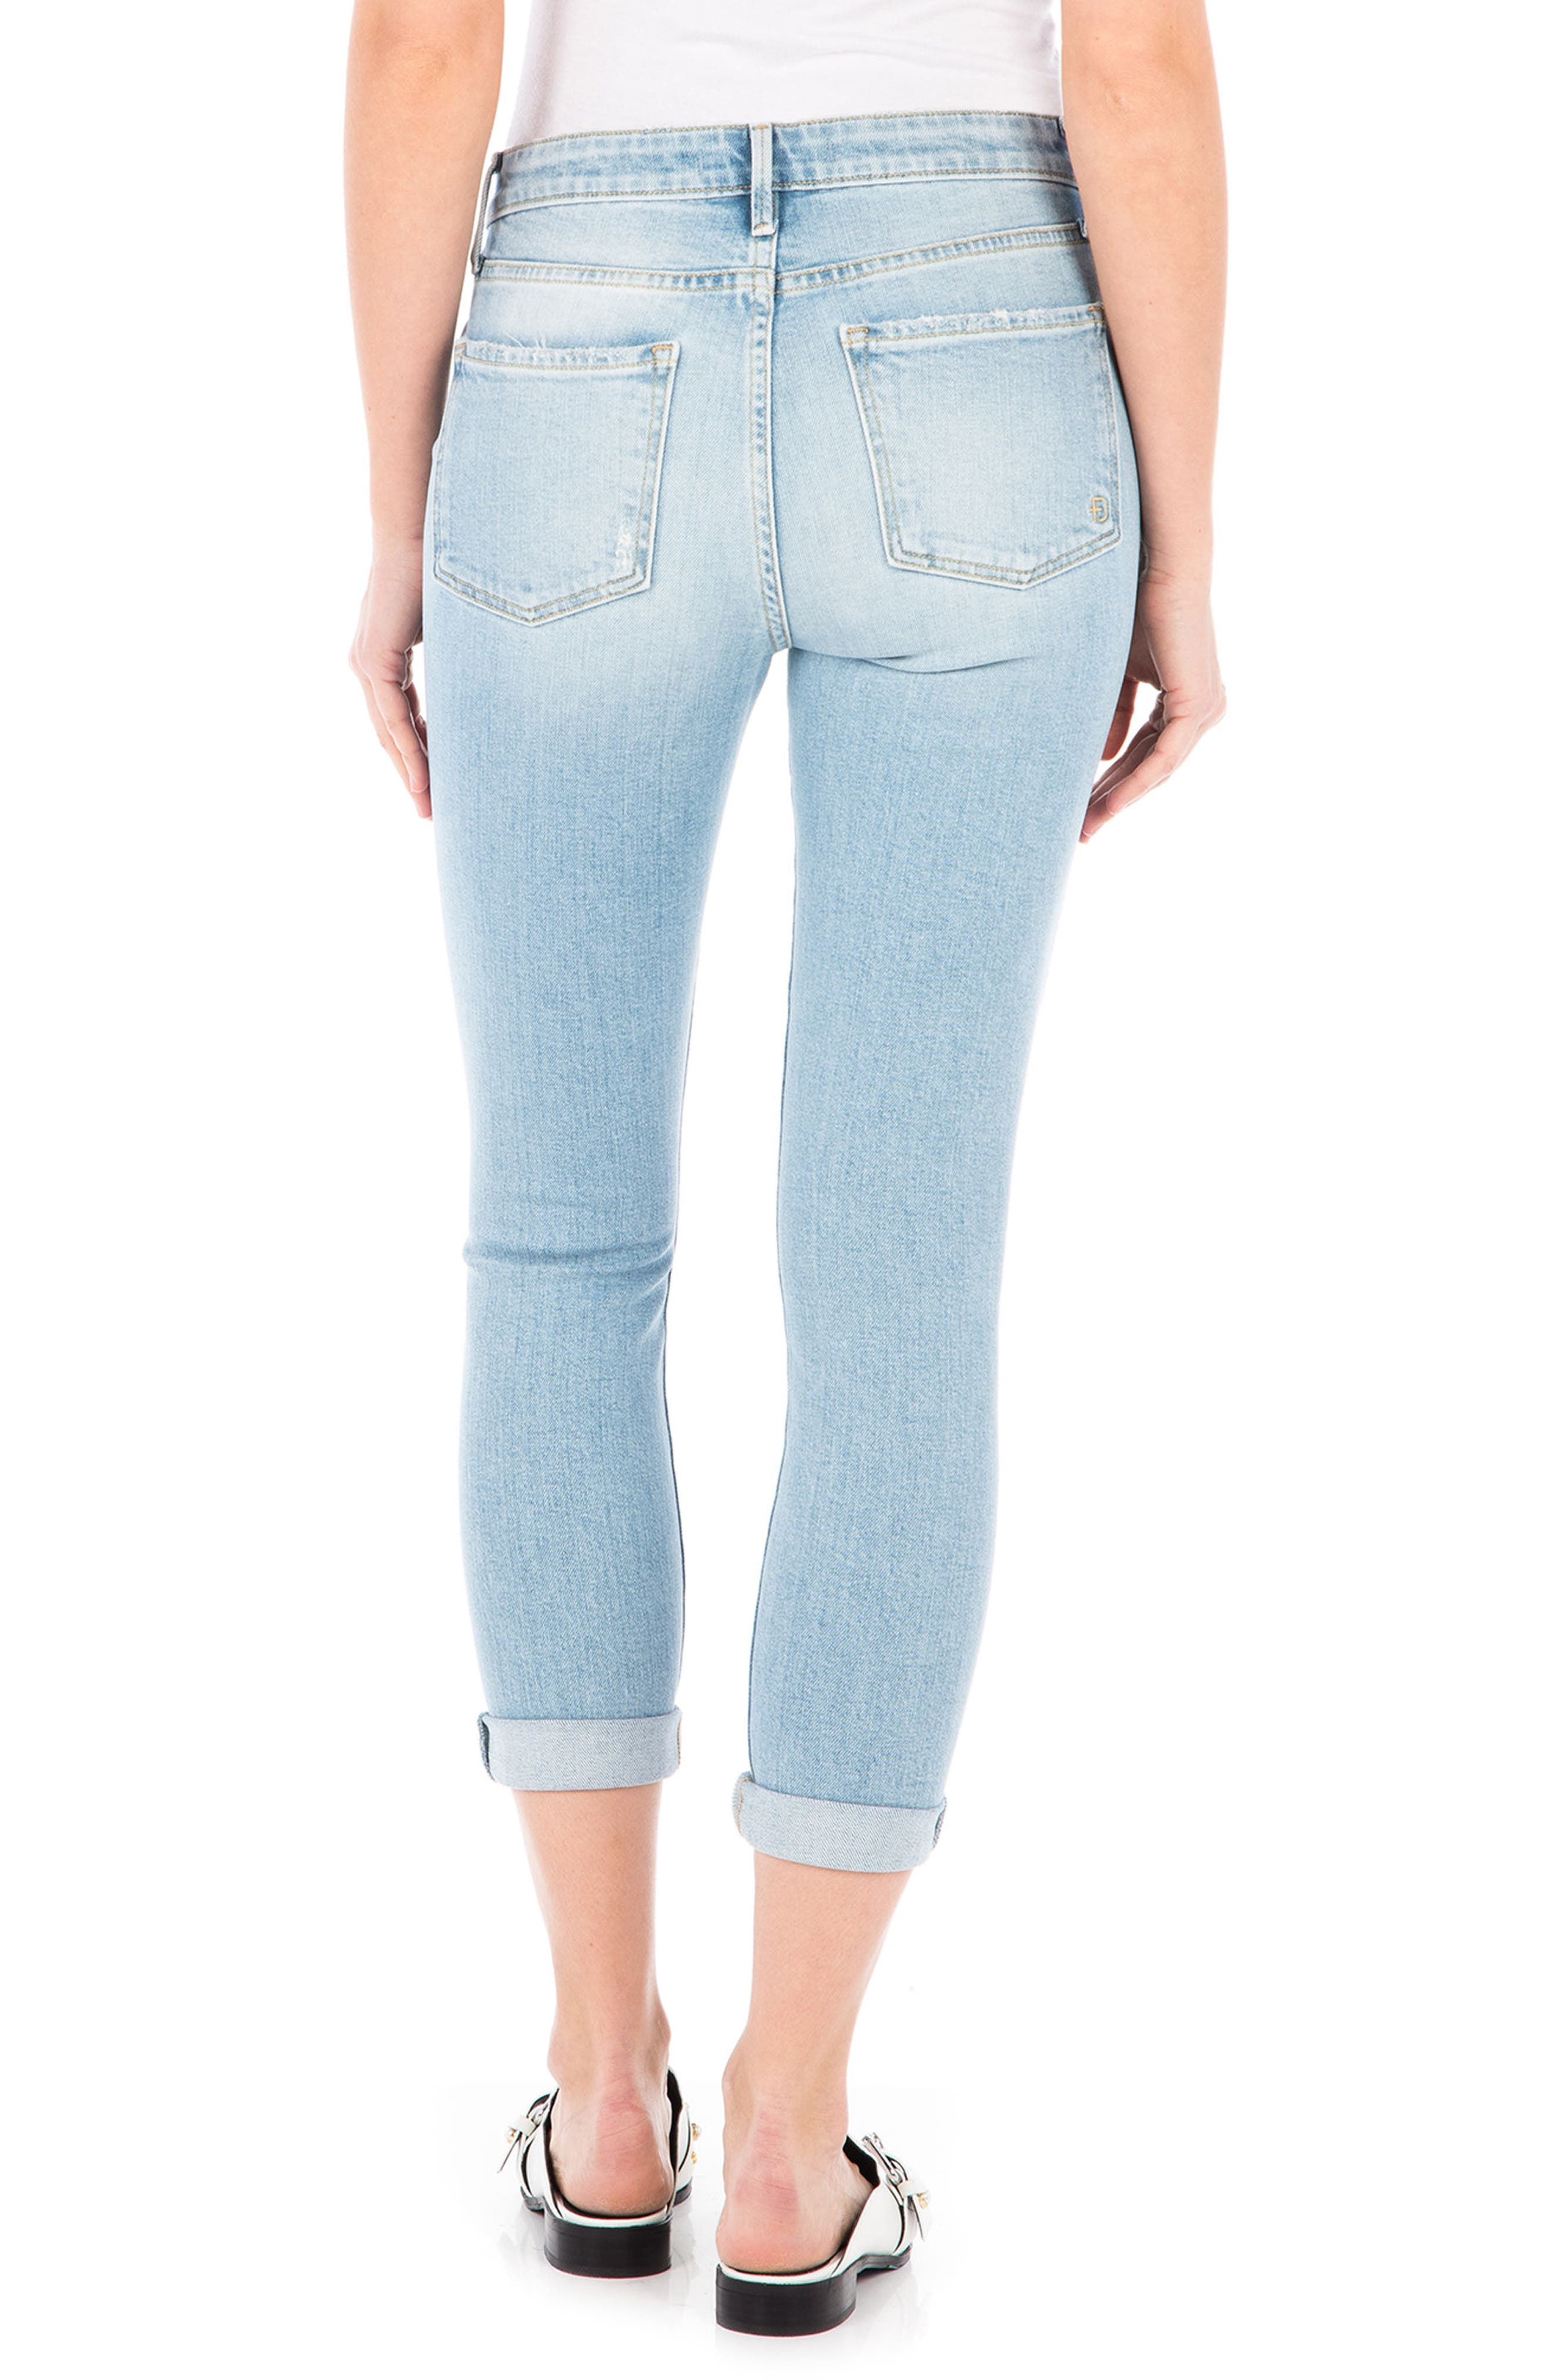 Gwen High Waist Crop Skinny Jeans,                             Alternate thumbnail 2, color,                             400